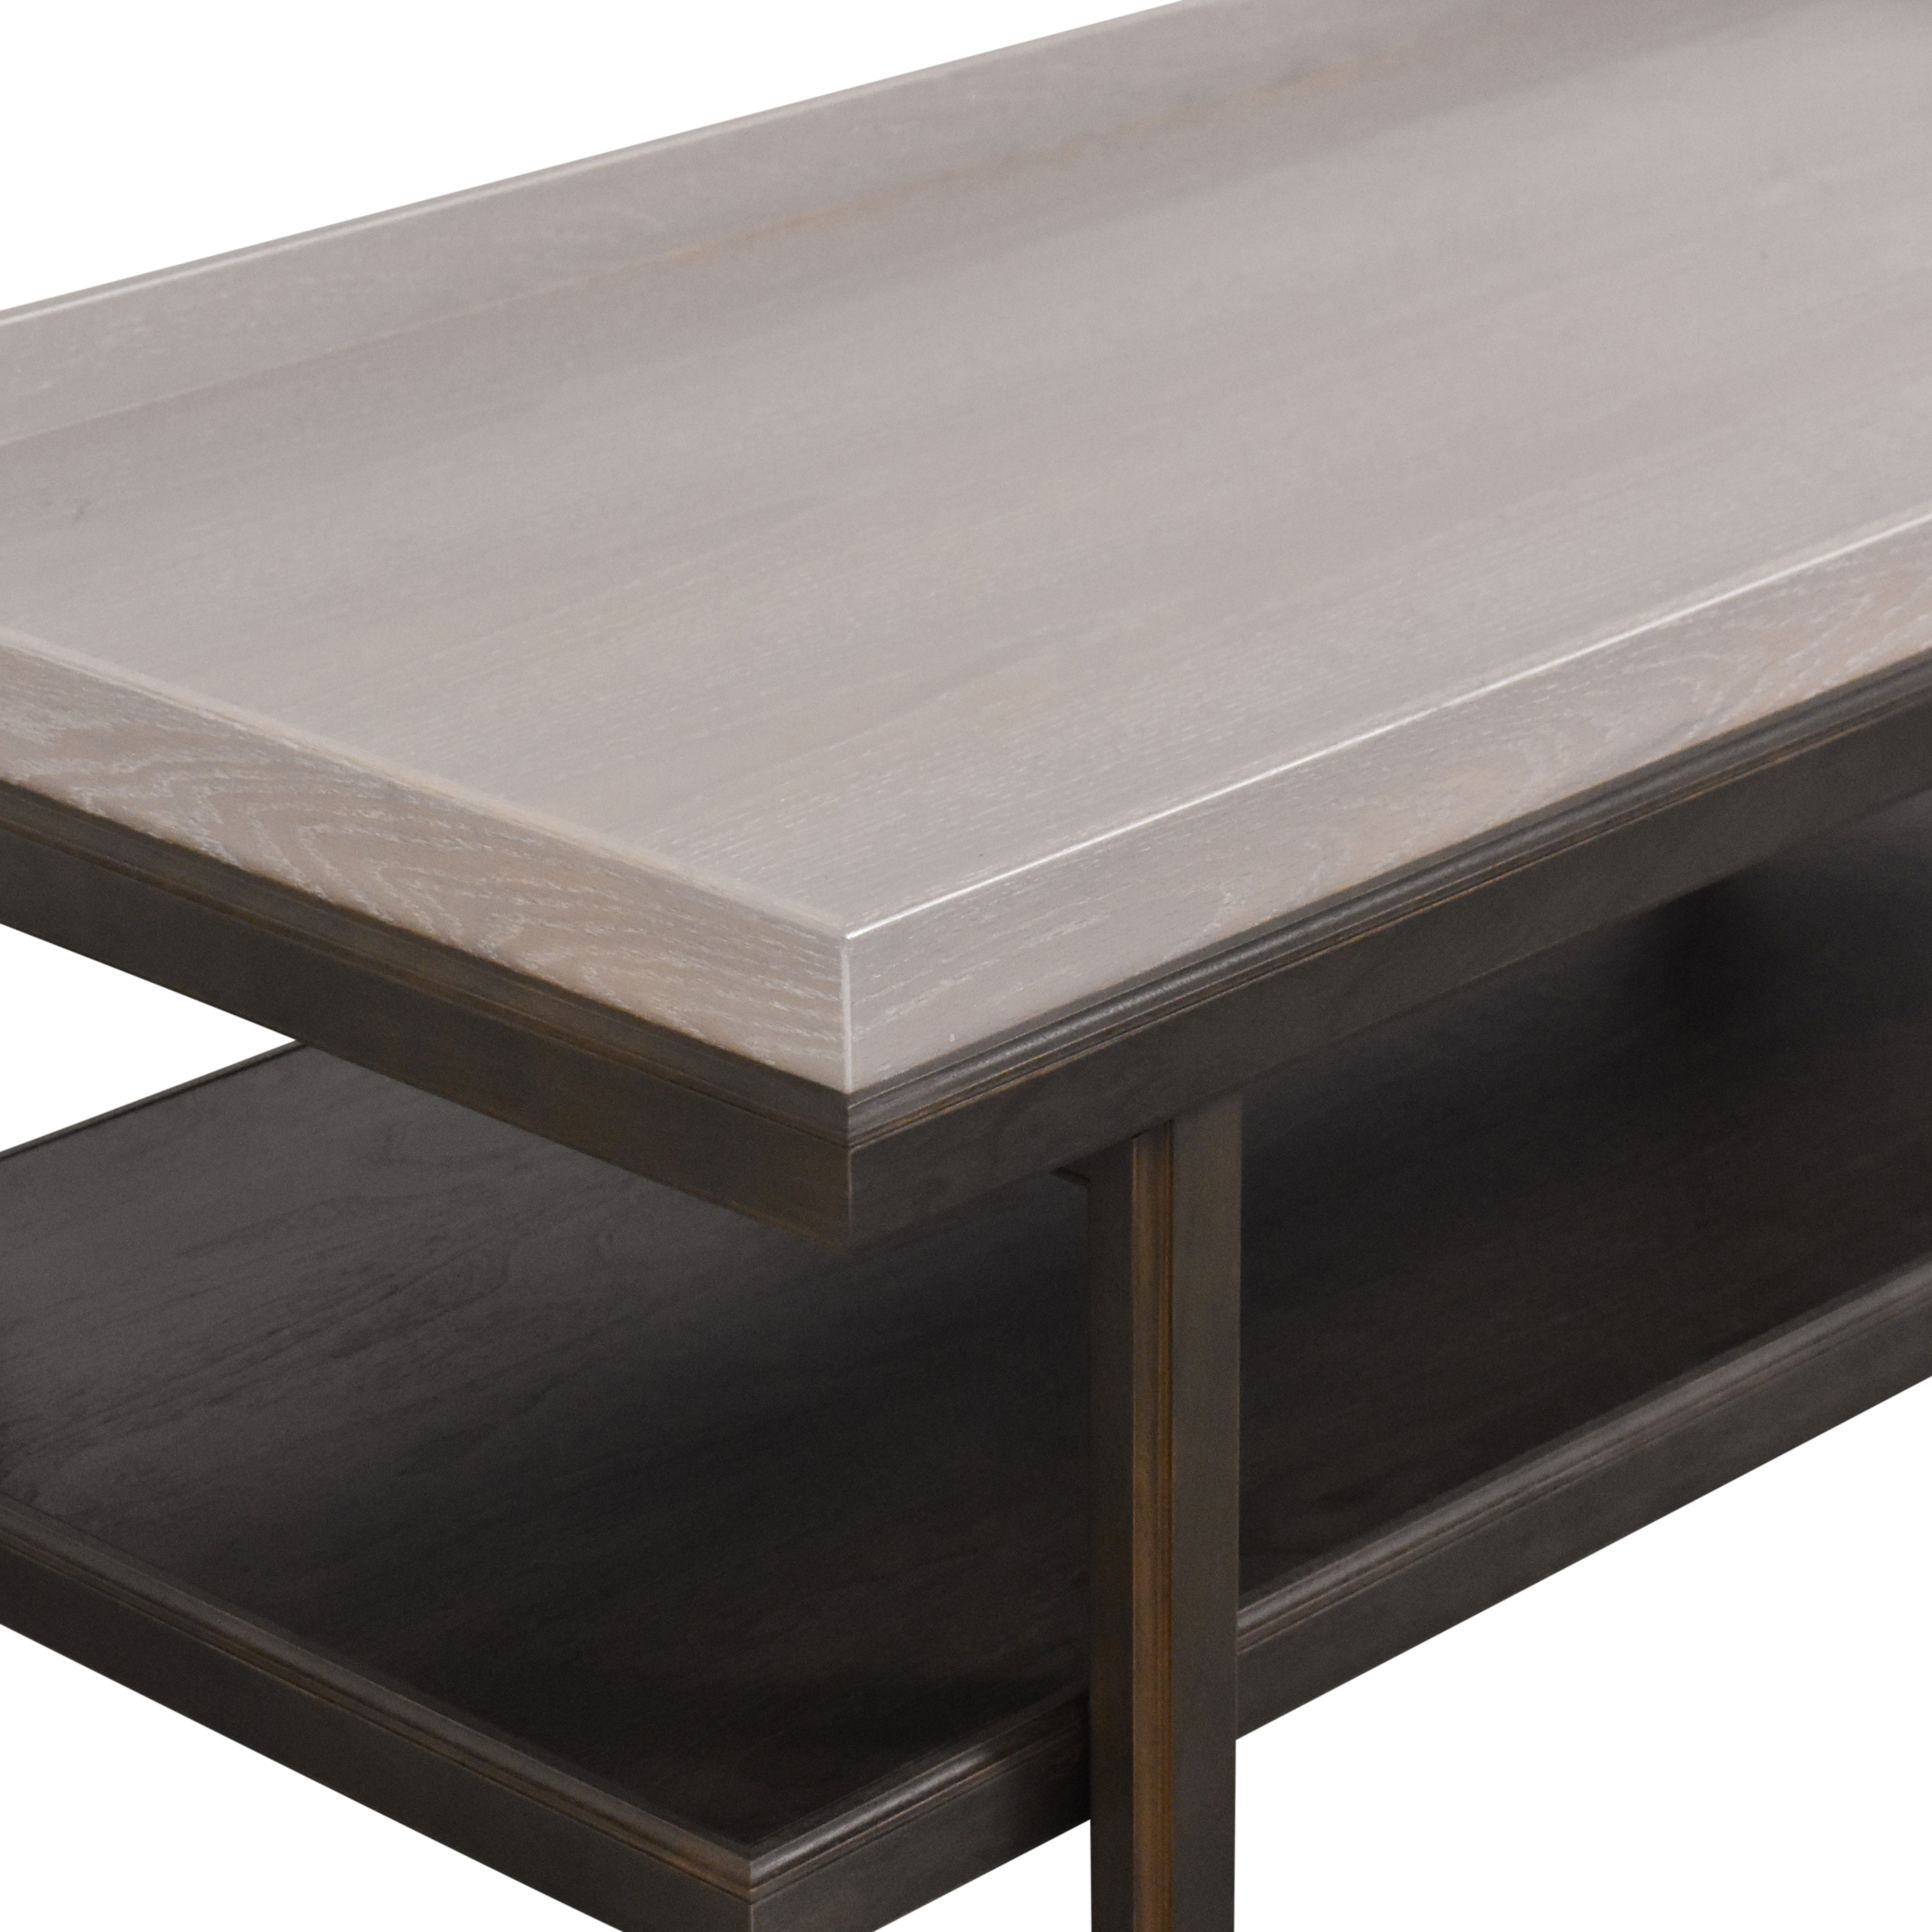 The New Traditionalists The New Traditionalists Tray Top Coffee Table second hand